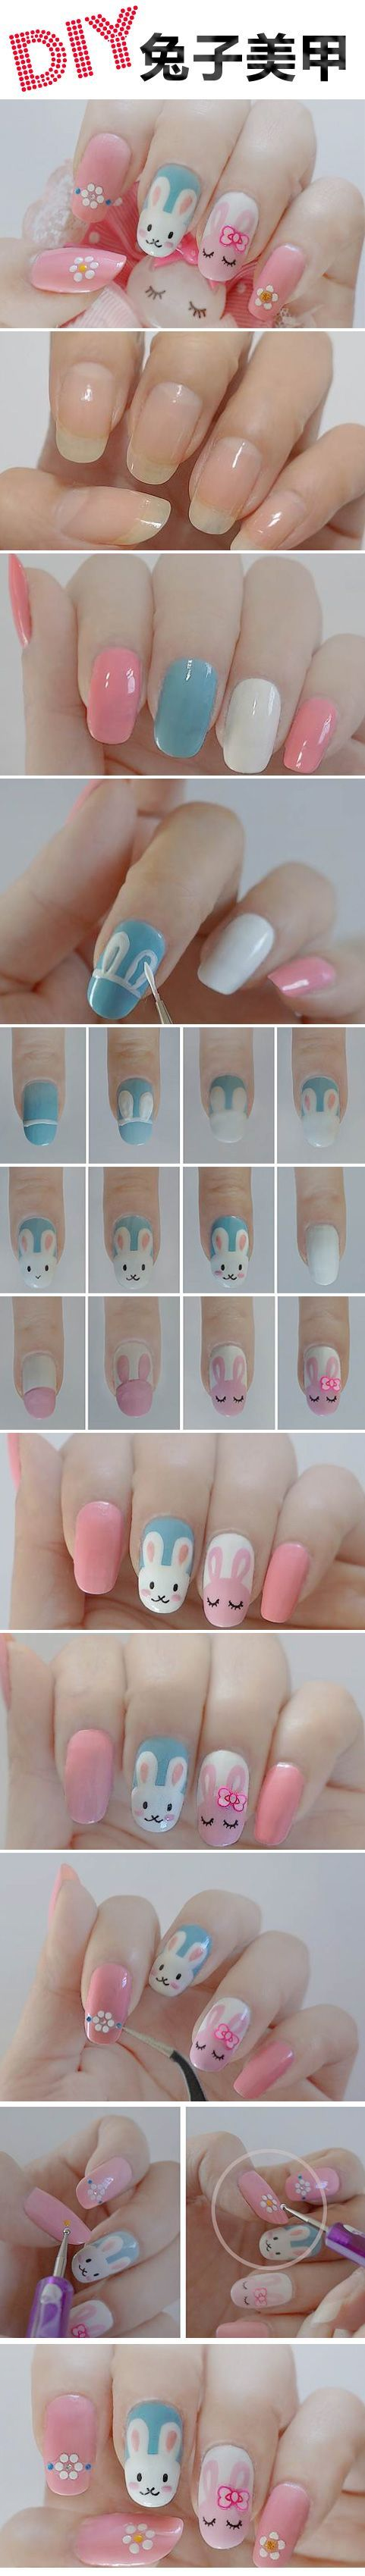 Nail art is a fun way to decorate your nails and it does...